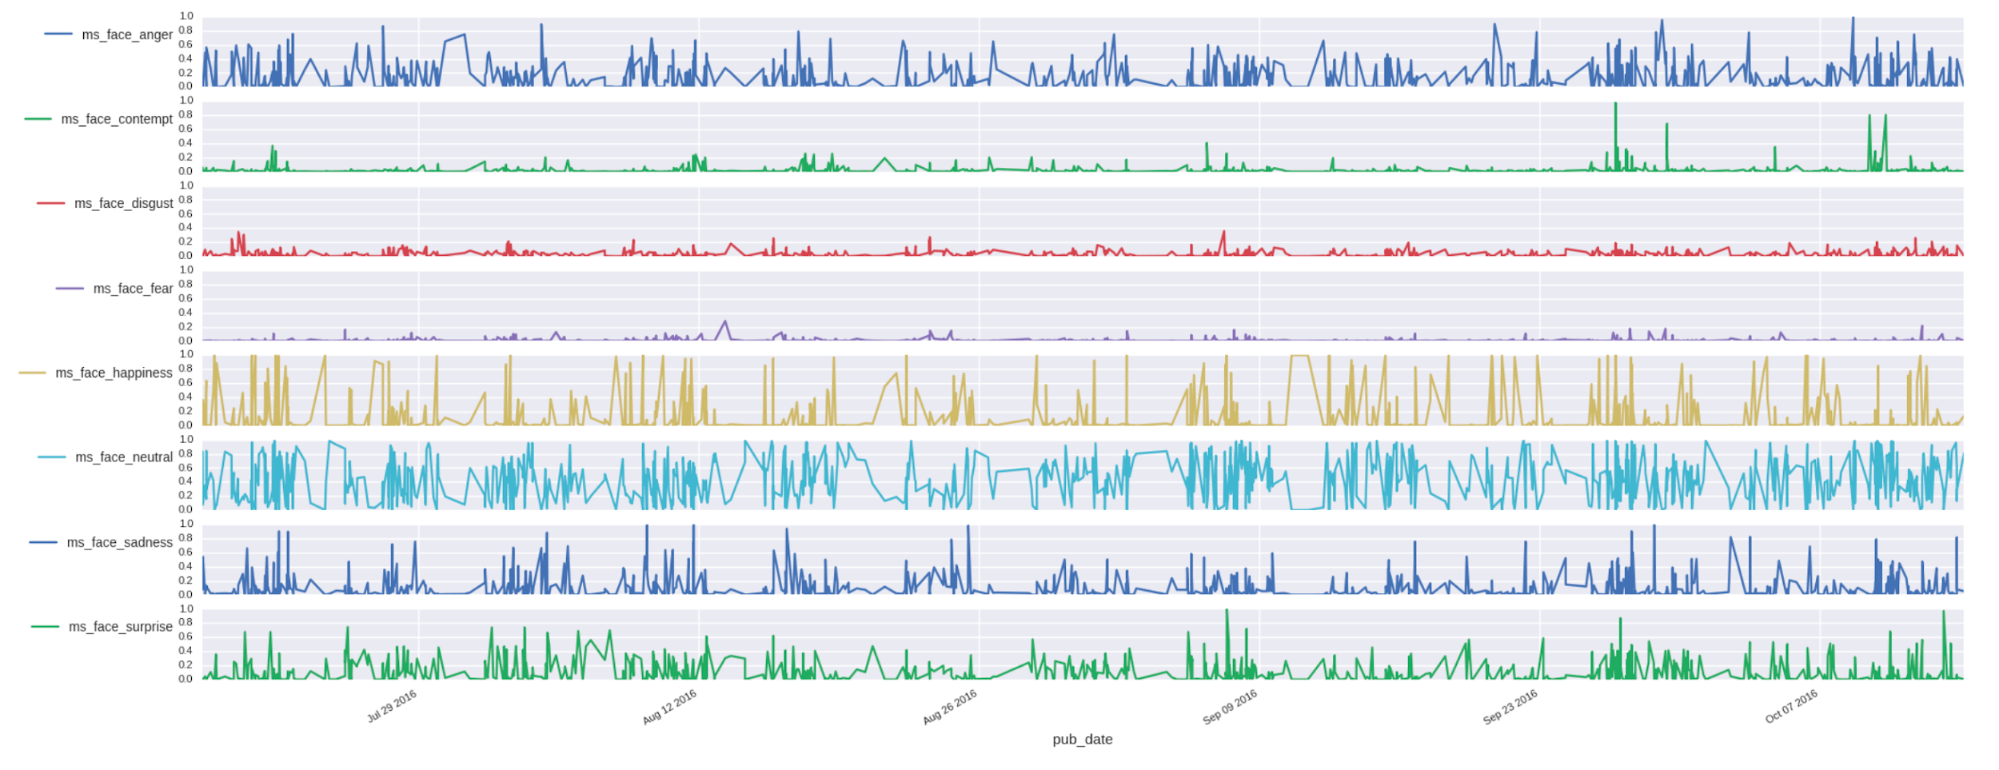 Charting emotions detected in photos of Trump over time. Each row is an emotion; spikes representing more photos classified with that emotion on that day.